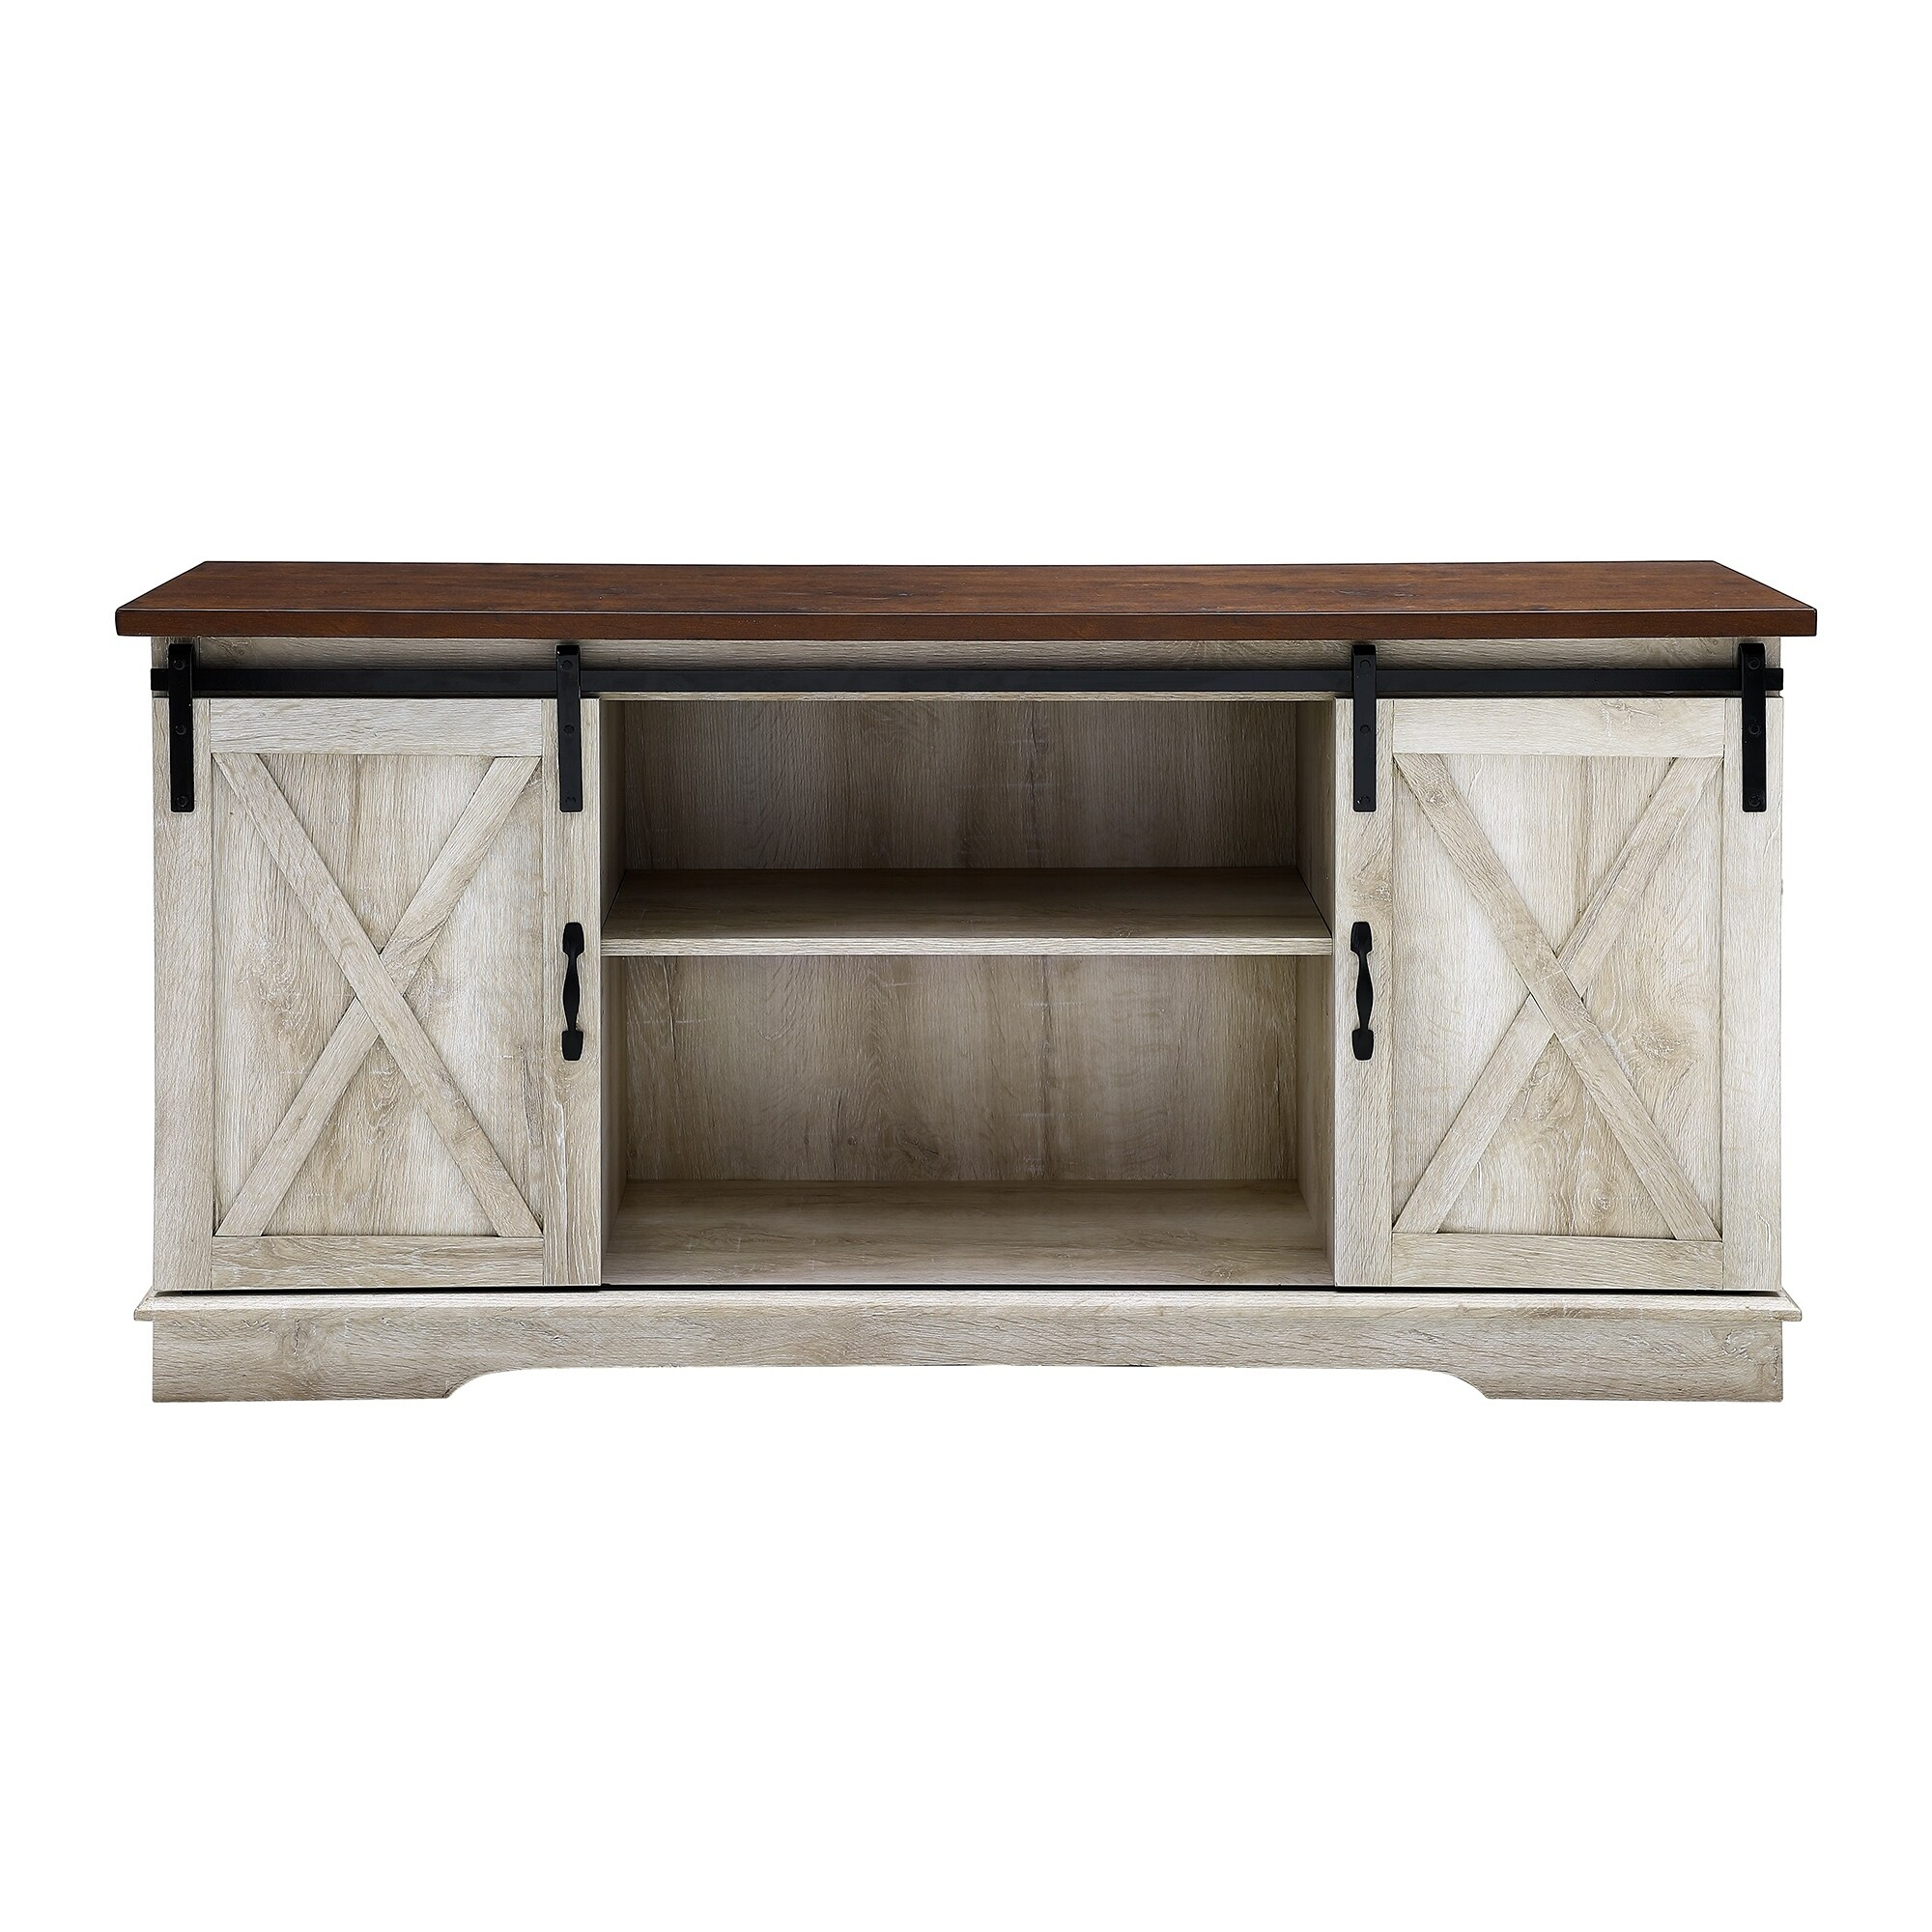 Shop The Gray Barn Wind Gap Rustic Sliding Barn Door TV Console   On Sale    Free Shipping Today   Overstock.com   21852732